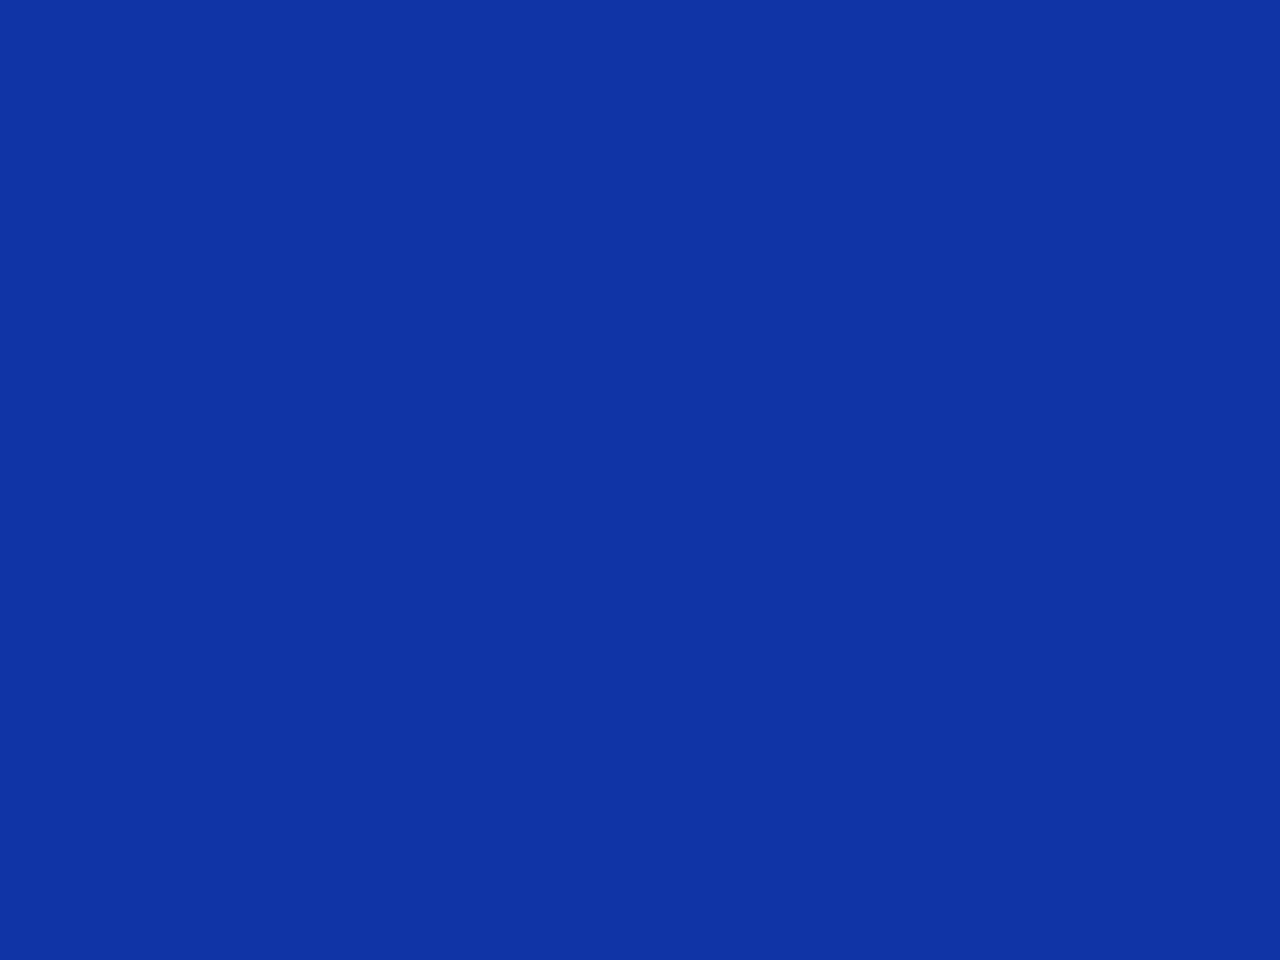 1280x960 Egyptian Blue Solid Color Background